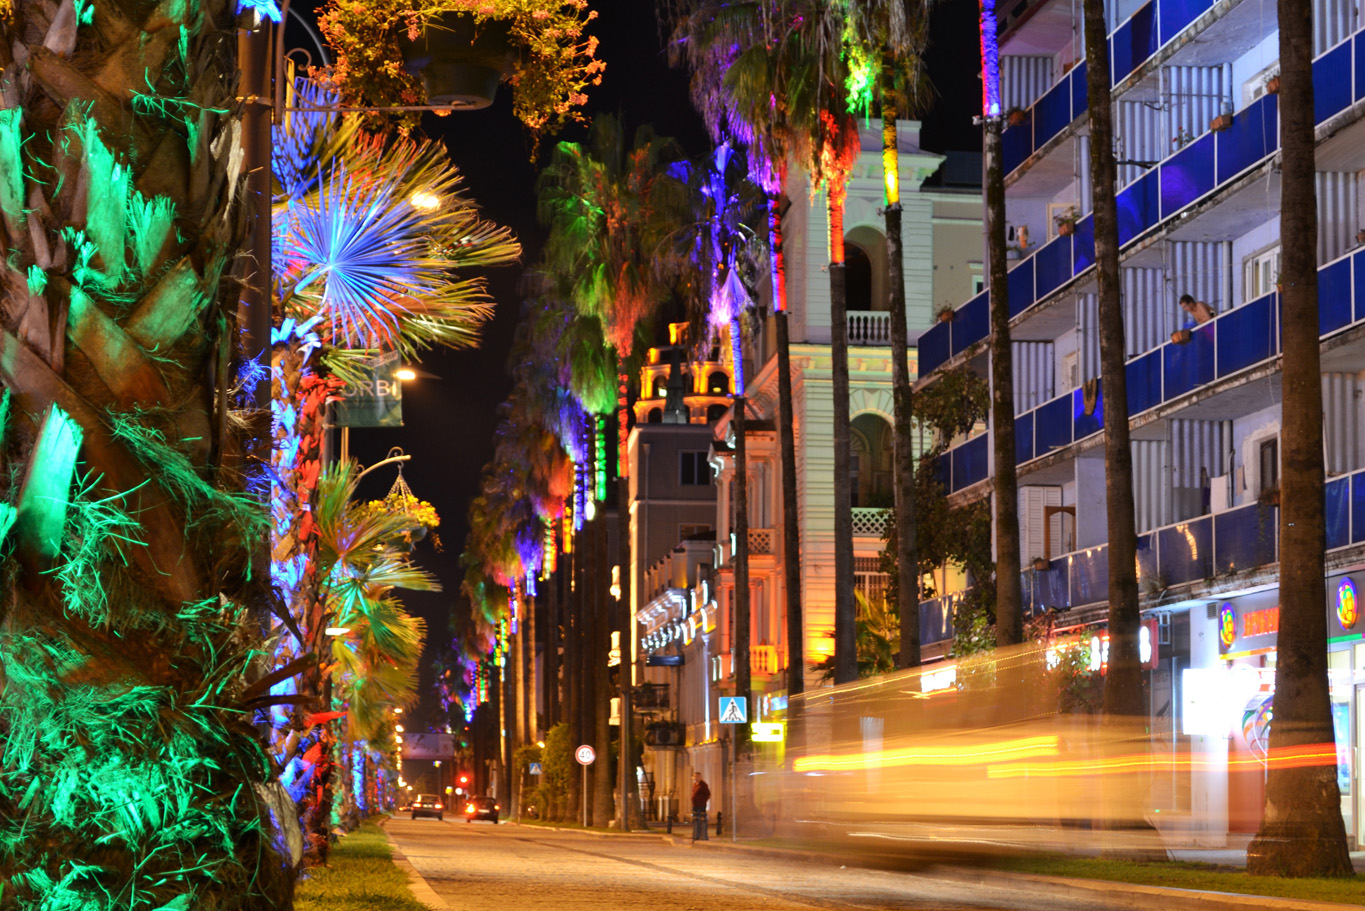 Colorfully illuminated palm trees in Batumi Old Town